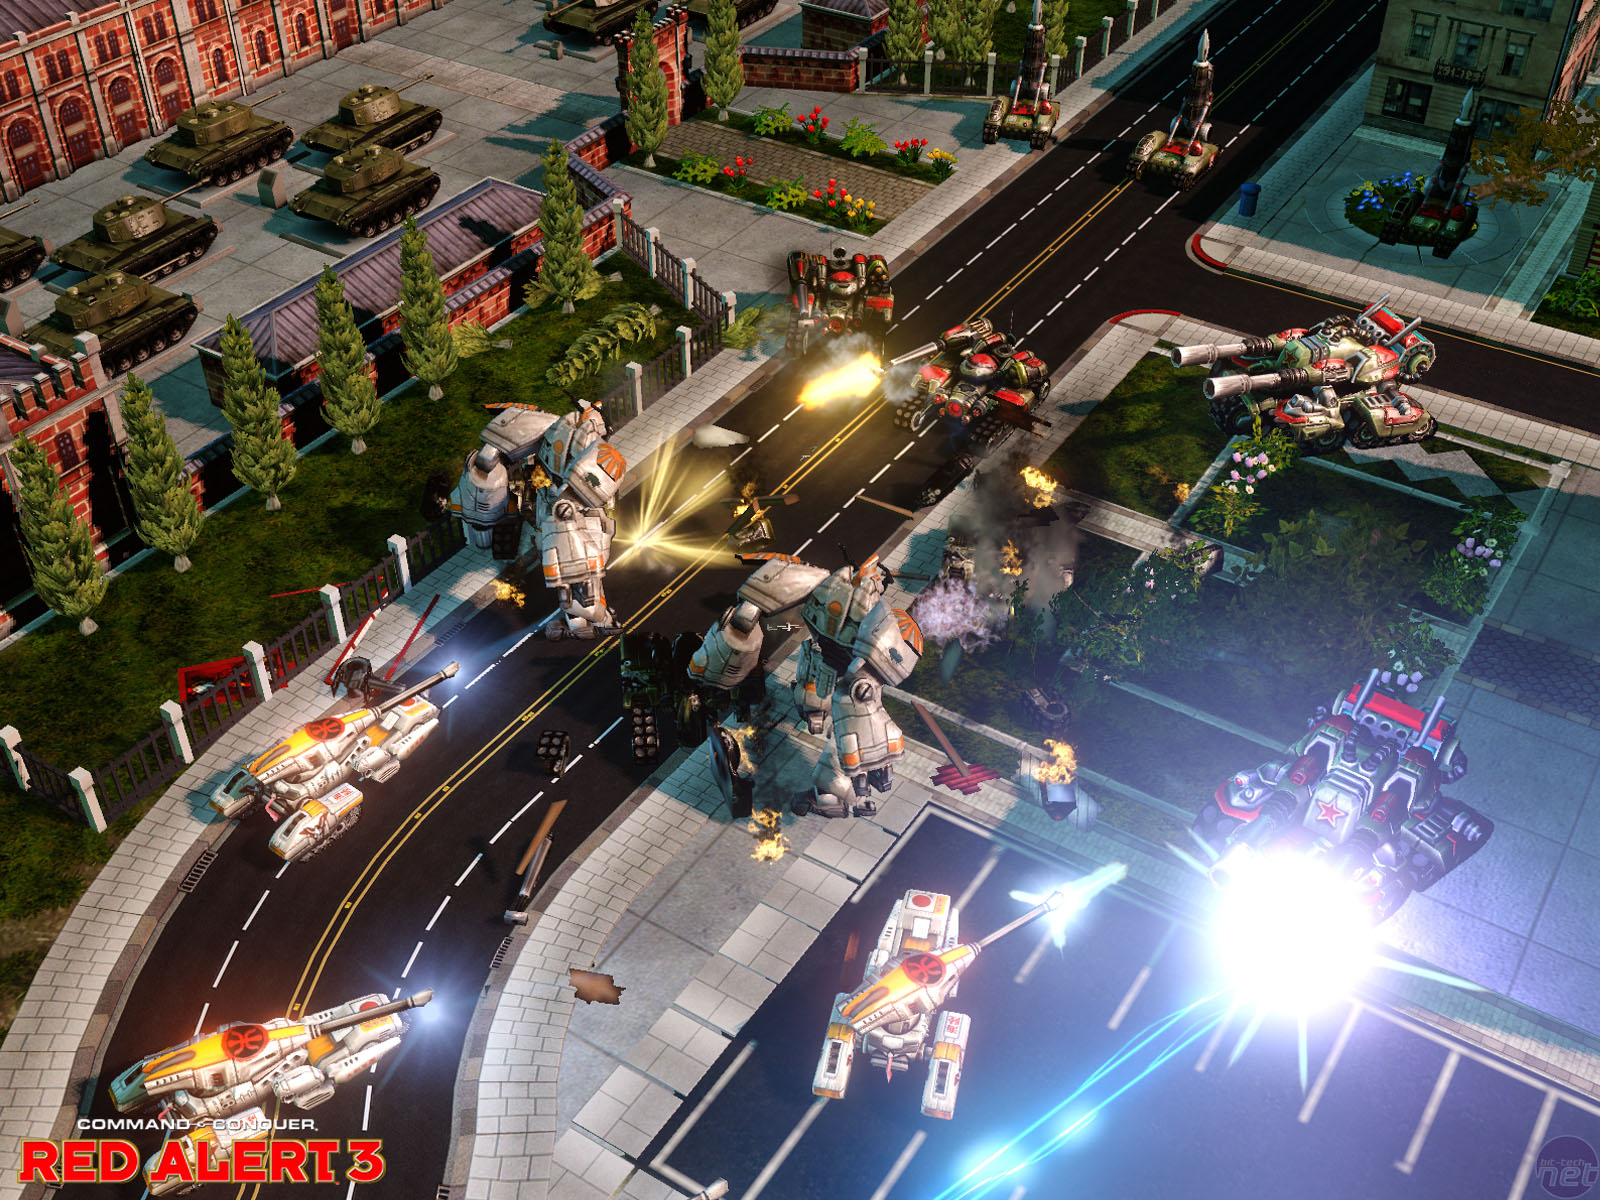 Red Alert 3 Hands on Preview